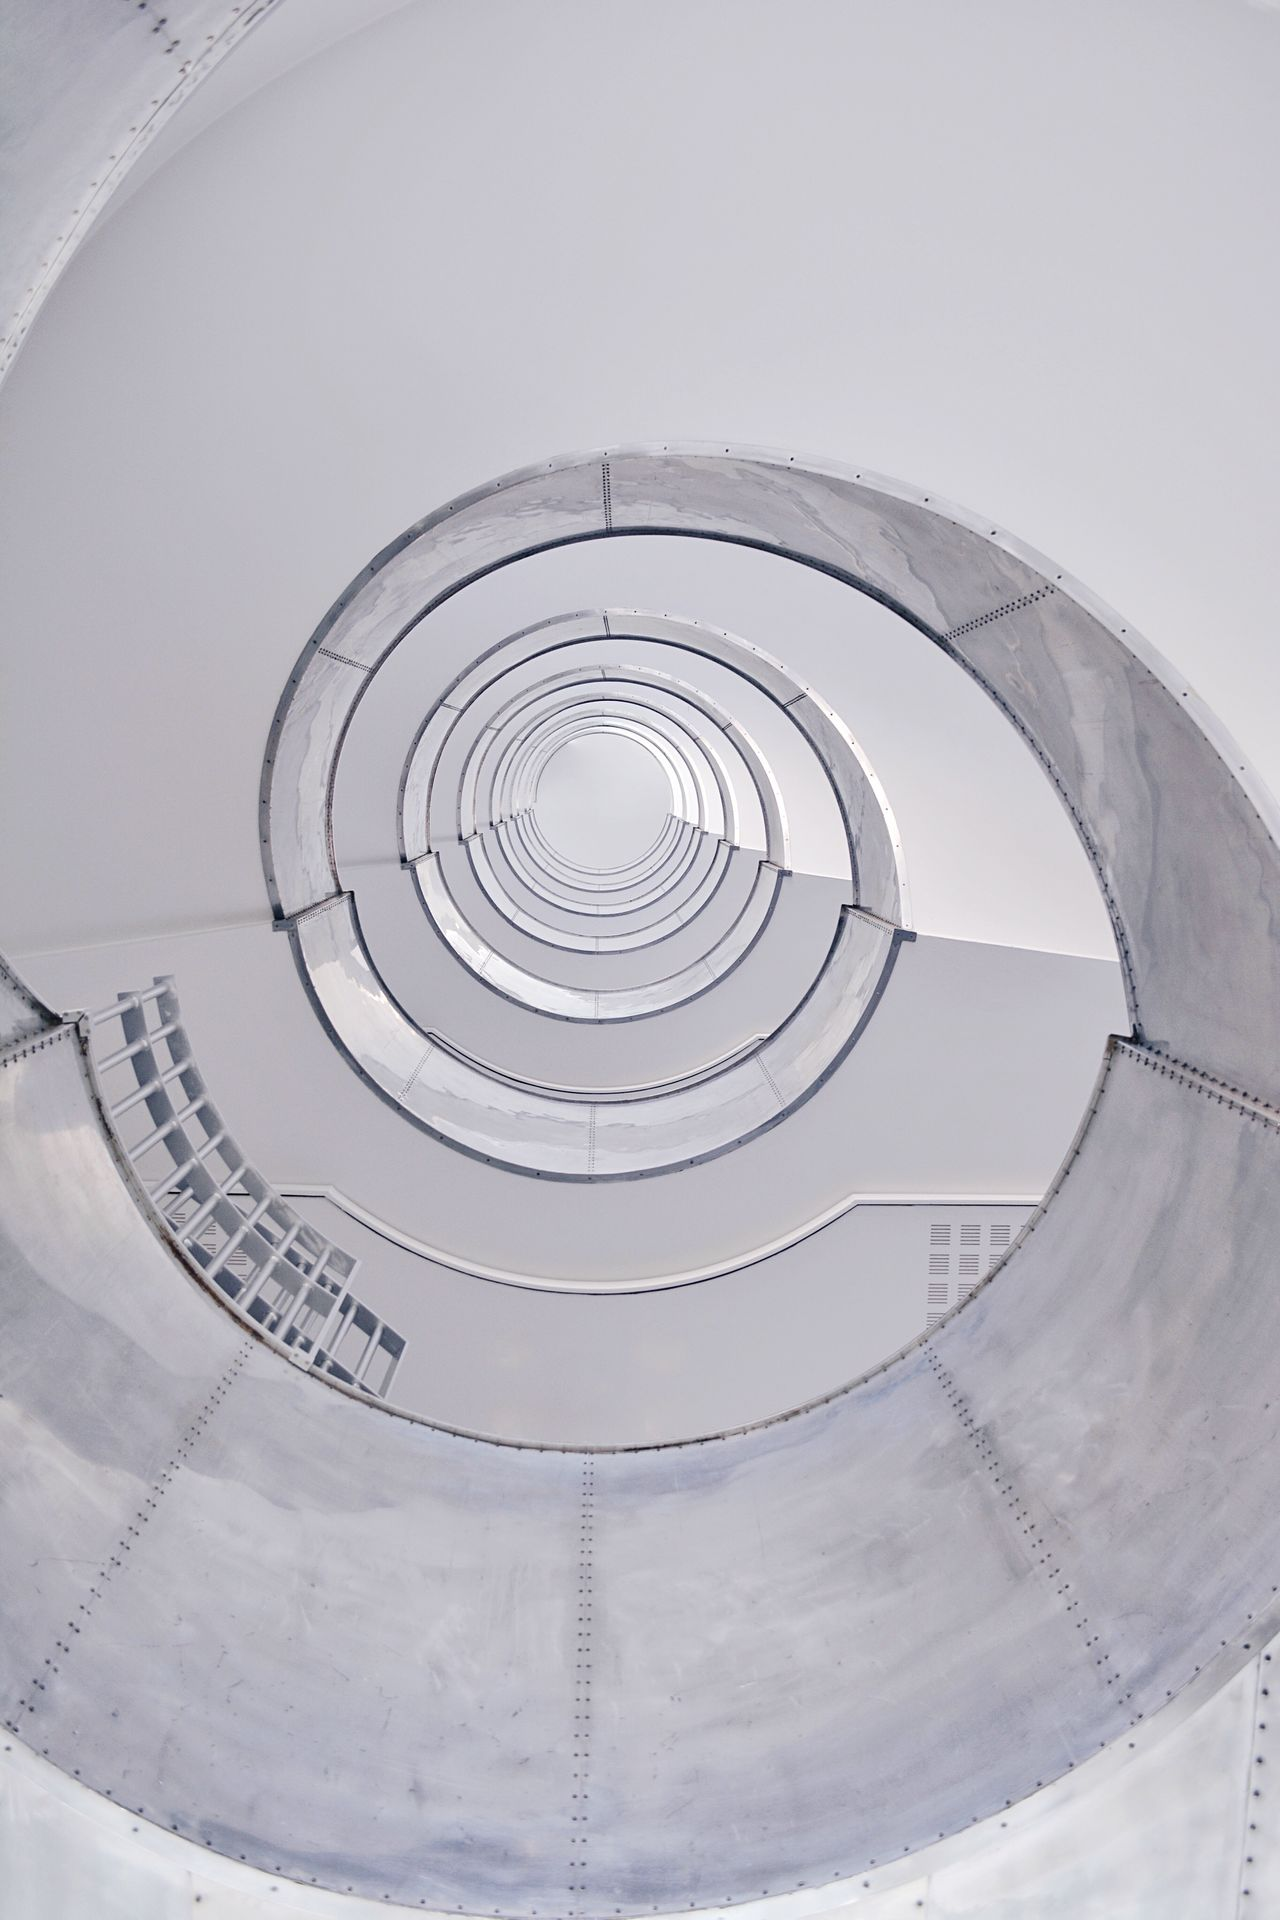 The Architect - 2017 EyeEm Awards Minimalmood Minimalist Photography  Minimalistic Spiral Staircase Circle Architecture Built Structure Steps And Staircases Low Angle View Spiral Staircase EyeEm Best Shots TheWeekOnEyeEM Minimalist Architecture Architecture_collection Architectural Feature Architecturelovers Architecturephotography Architecture Architectural Detail Architectureporn Minimal_lookup Lookingup_architecture Theworldneedsmorespiralstaircases BYOPaper!